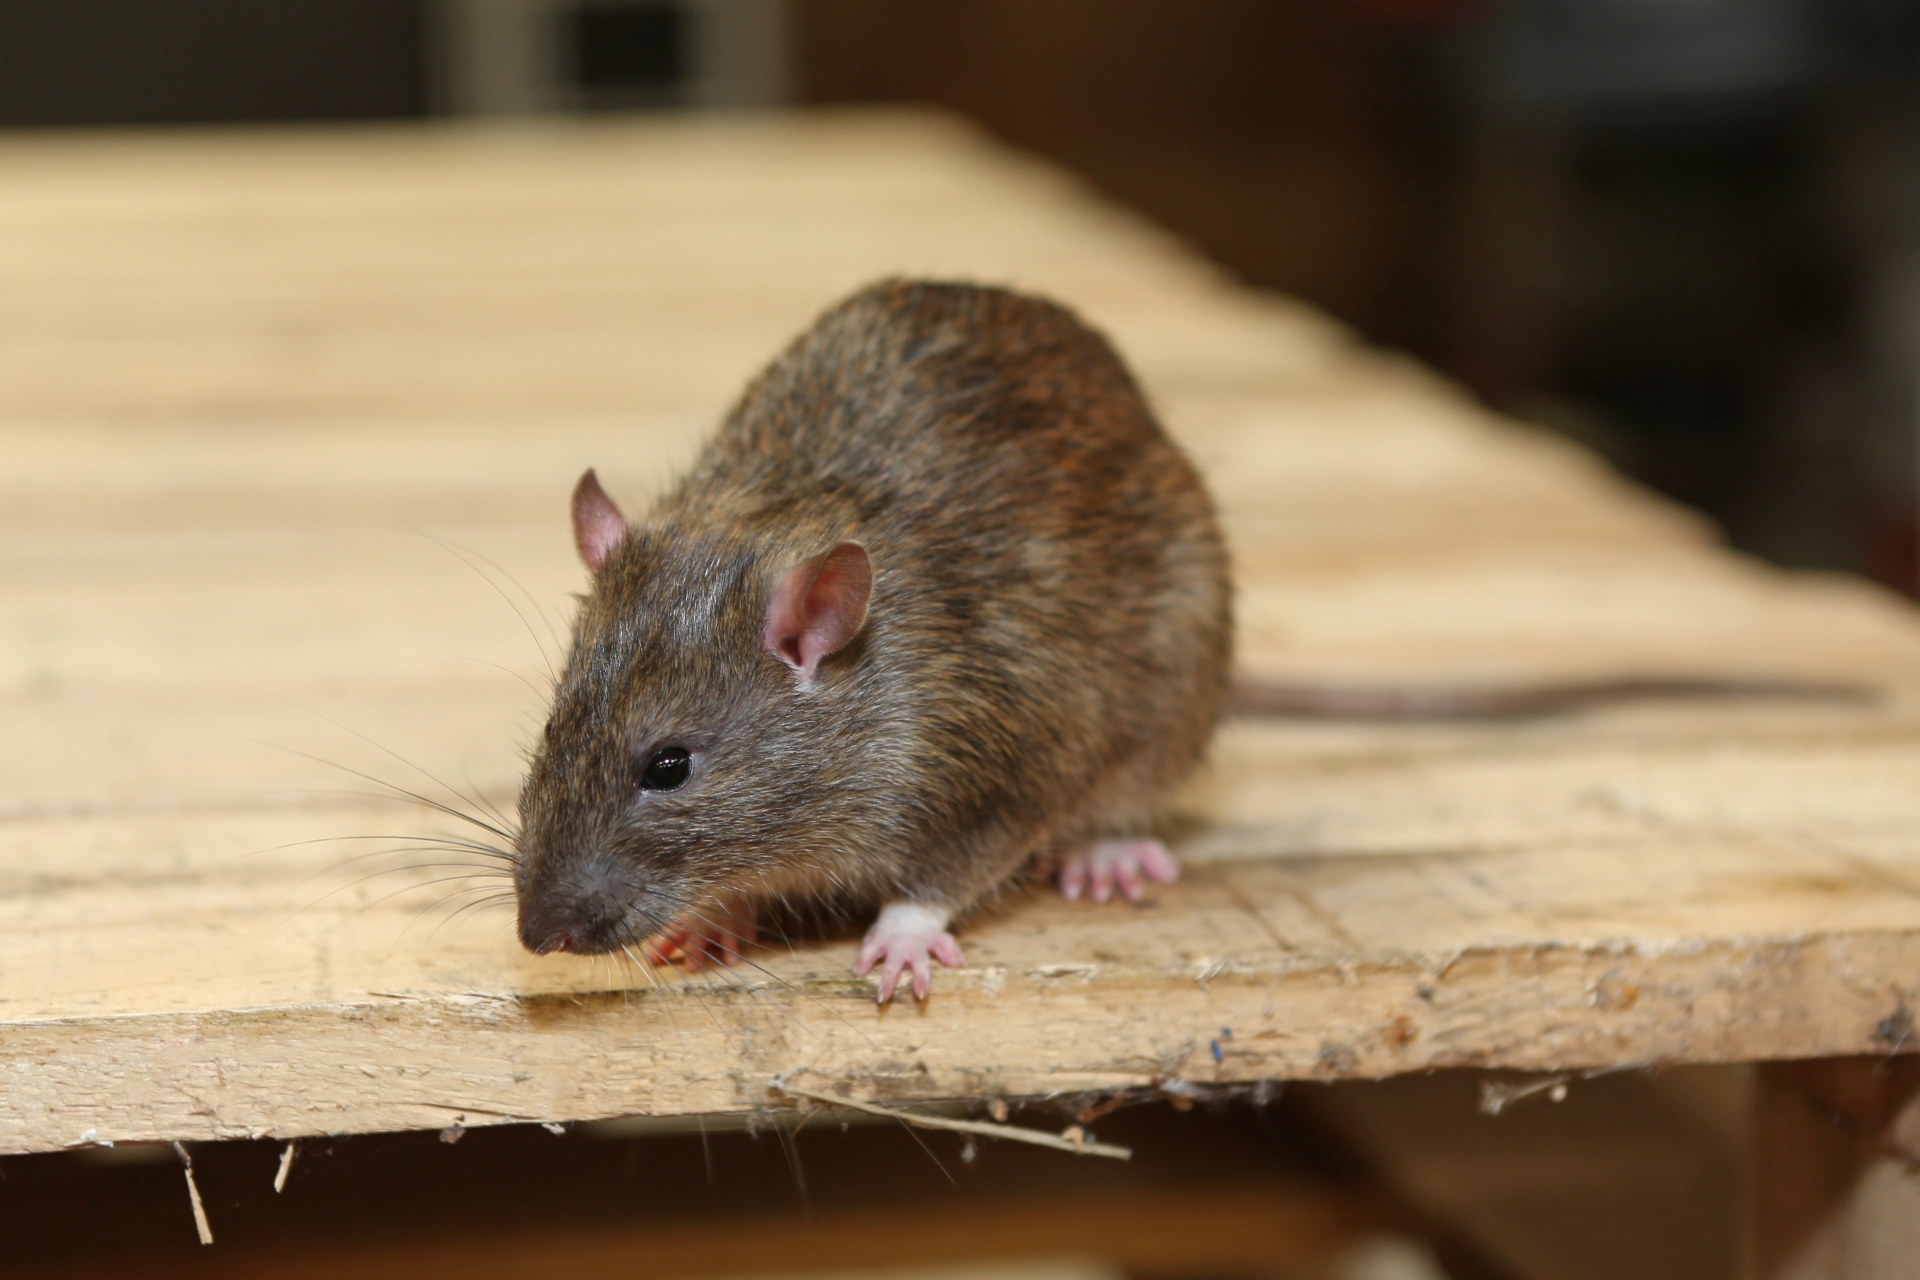 Rat Control, Pest Control in Foots Cray, DA14. Call Now 020 8166 9746